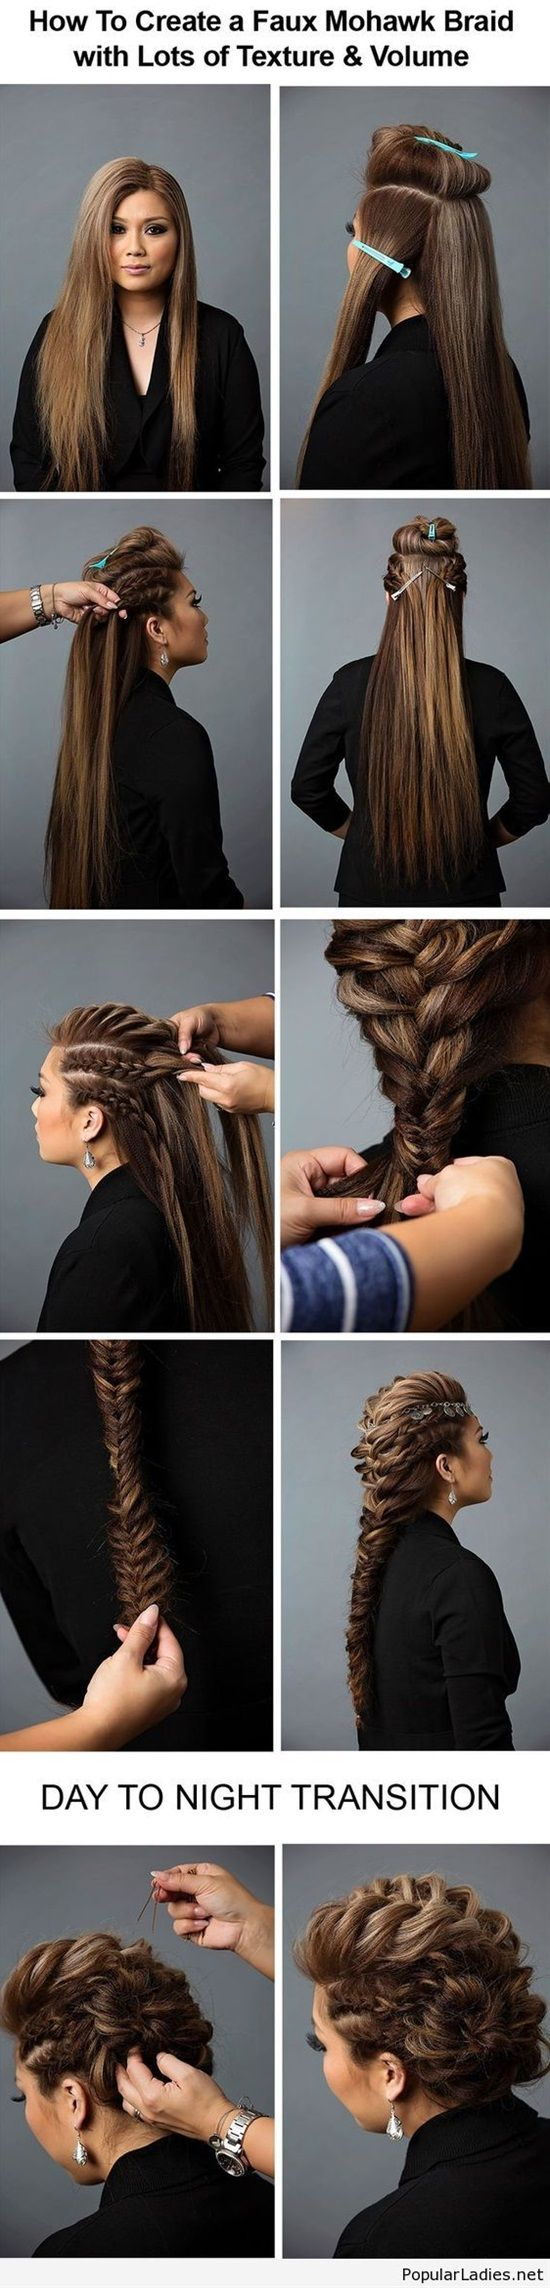 bold u unique hairstyle tutorials you can do at home mix style